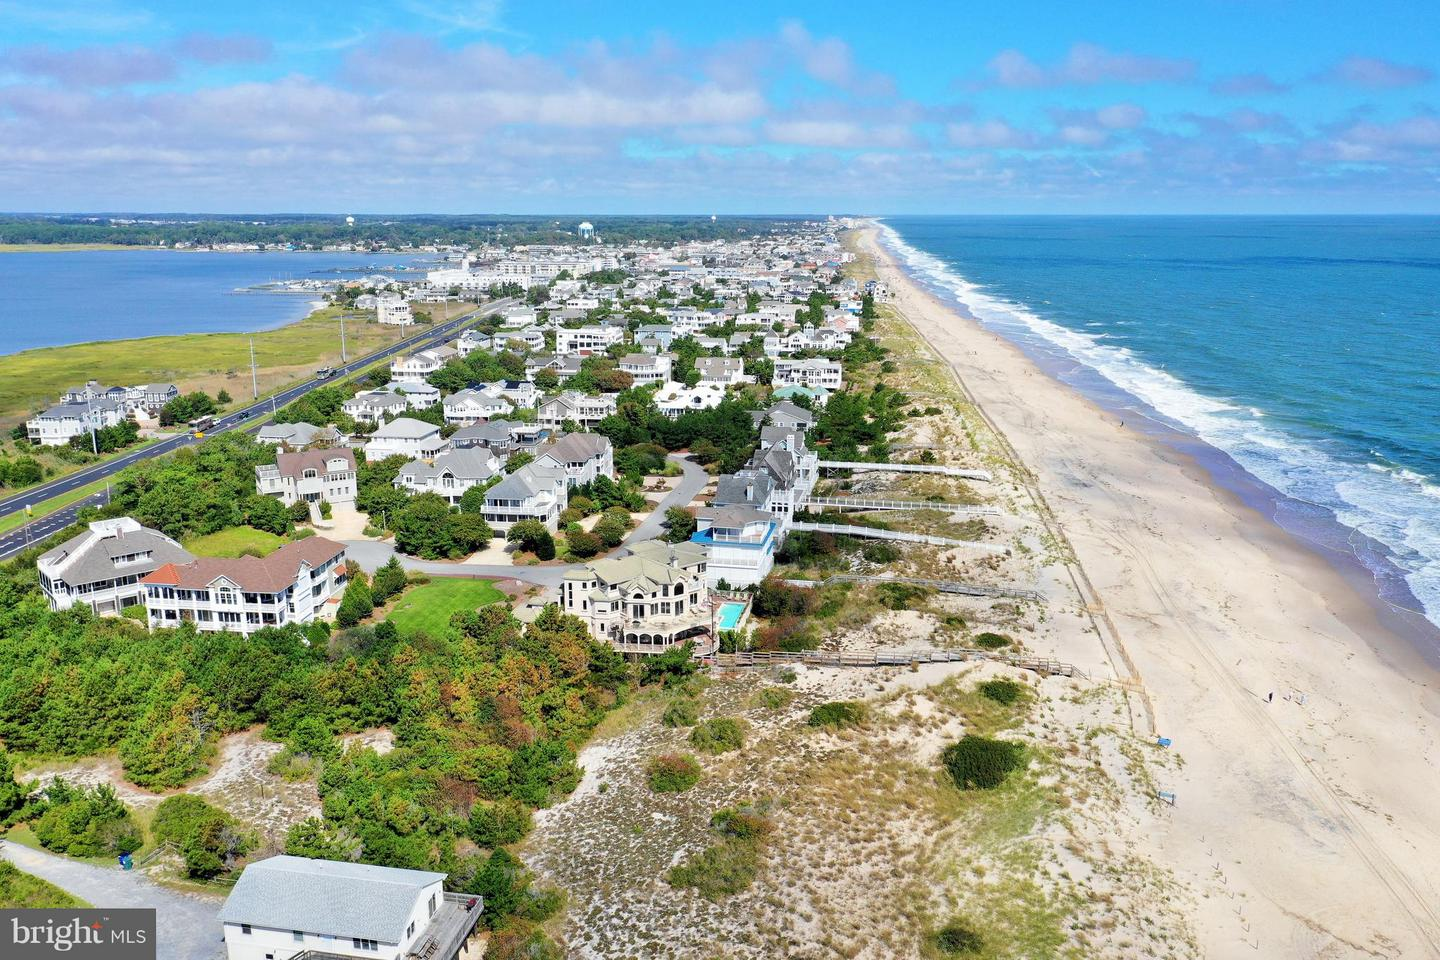 1002293530-300720130617-2018-09-25-15-08-25 31 Hall Ave | Rehoboth Beach, DE Real Estate For Sale | MLS# 1002293530  - 1st Choice Properties